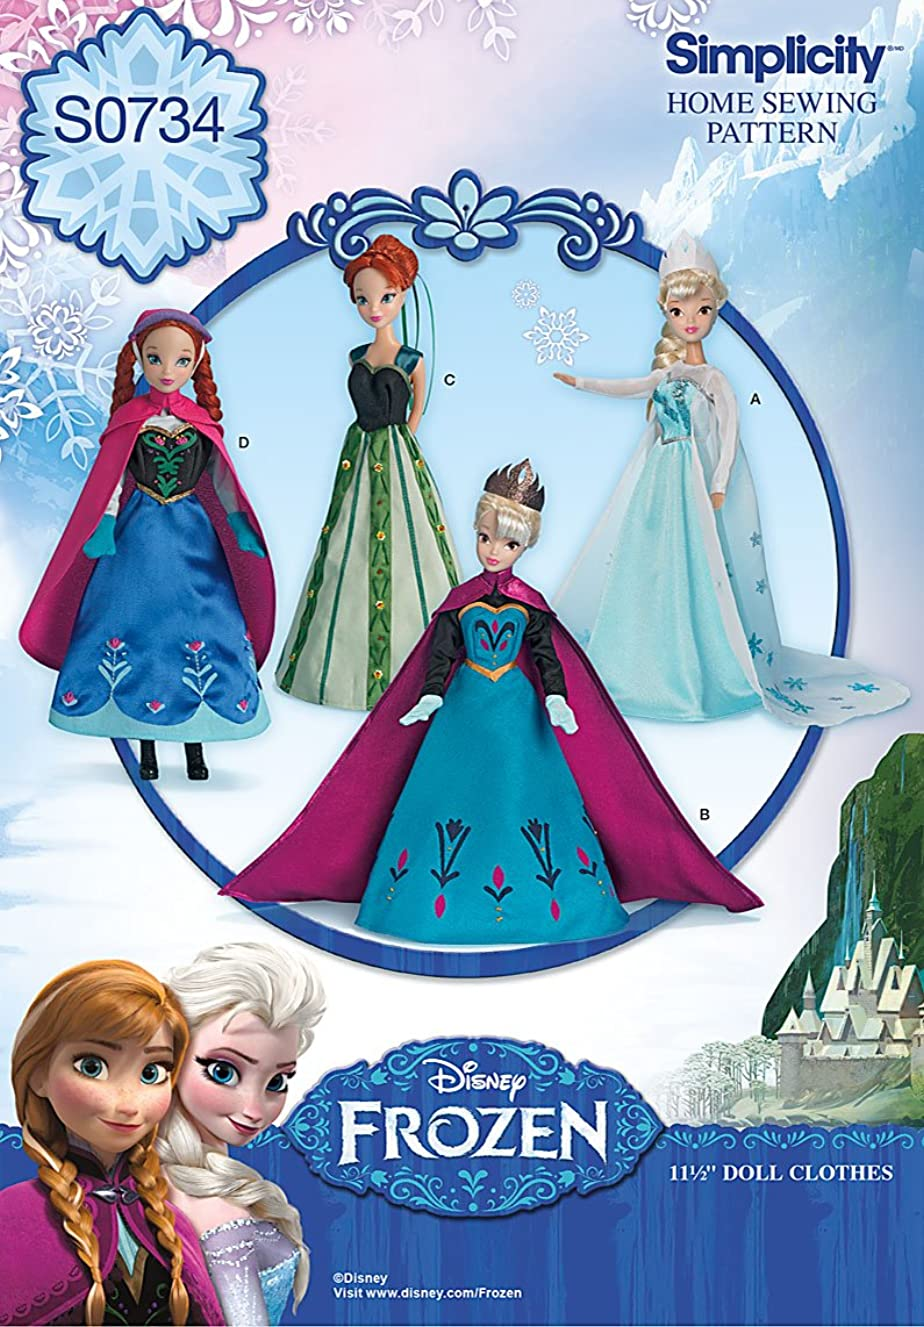 Simplicity Creative Patterns S0734 Disney's Frozen Doll Pattern Clothes, 11-1/2-Inch